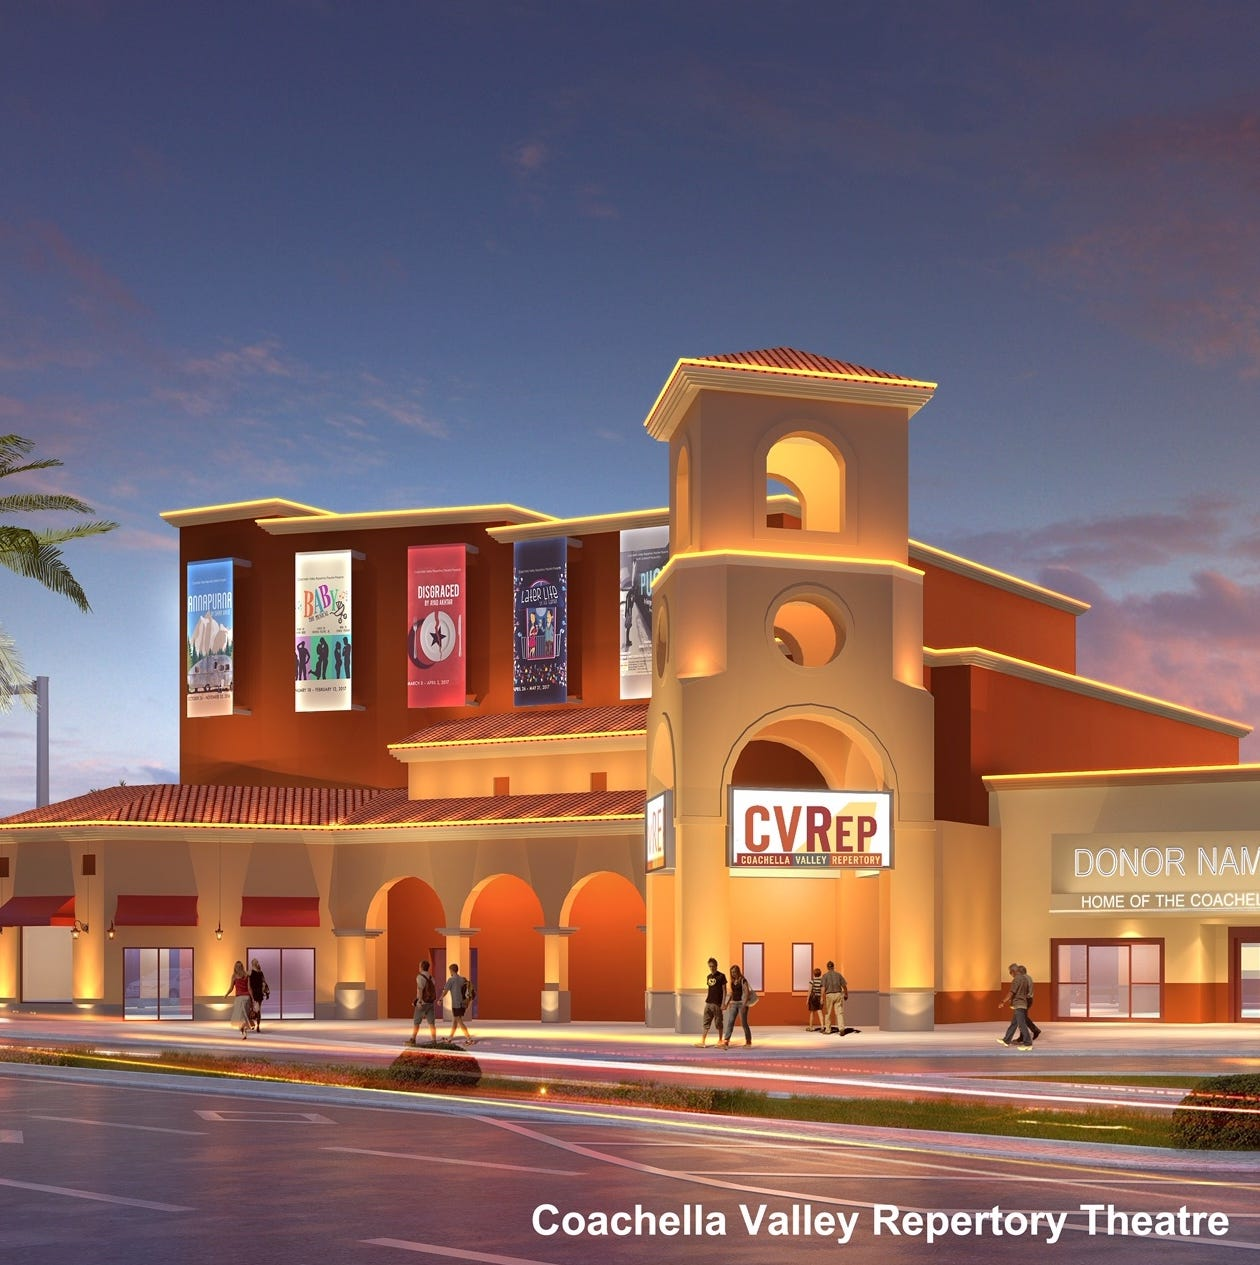 How Coachella Valley Repertory Theatre Made Their Dream Come True